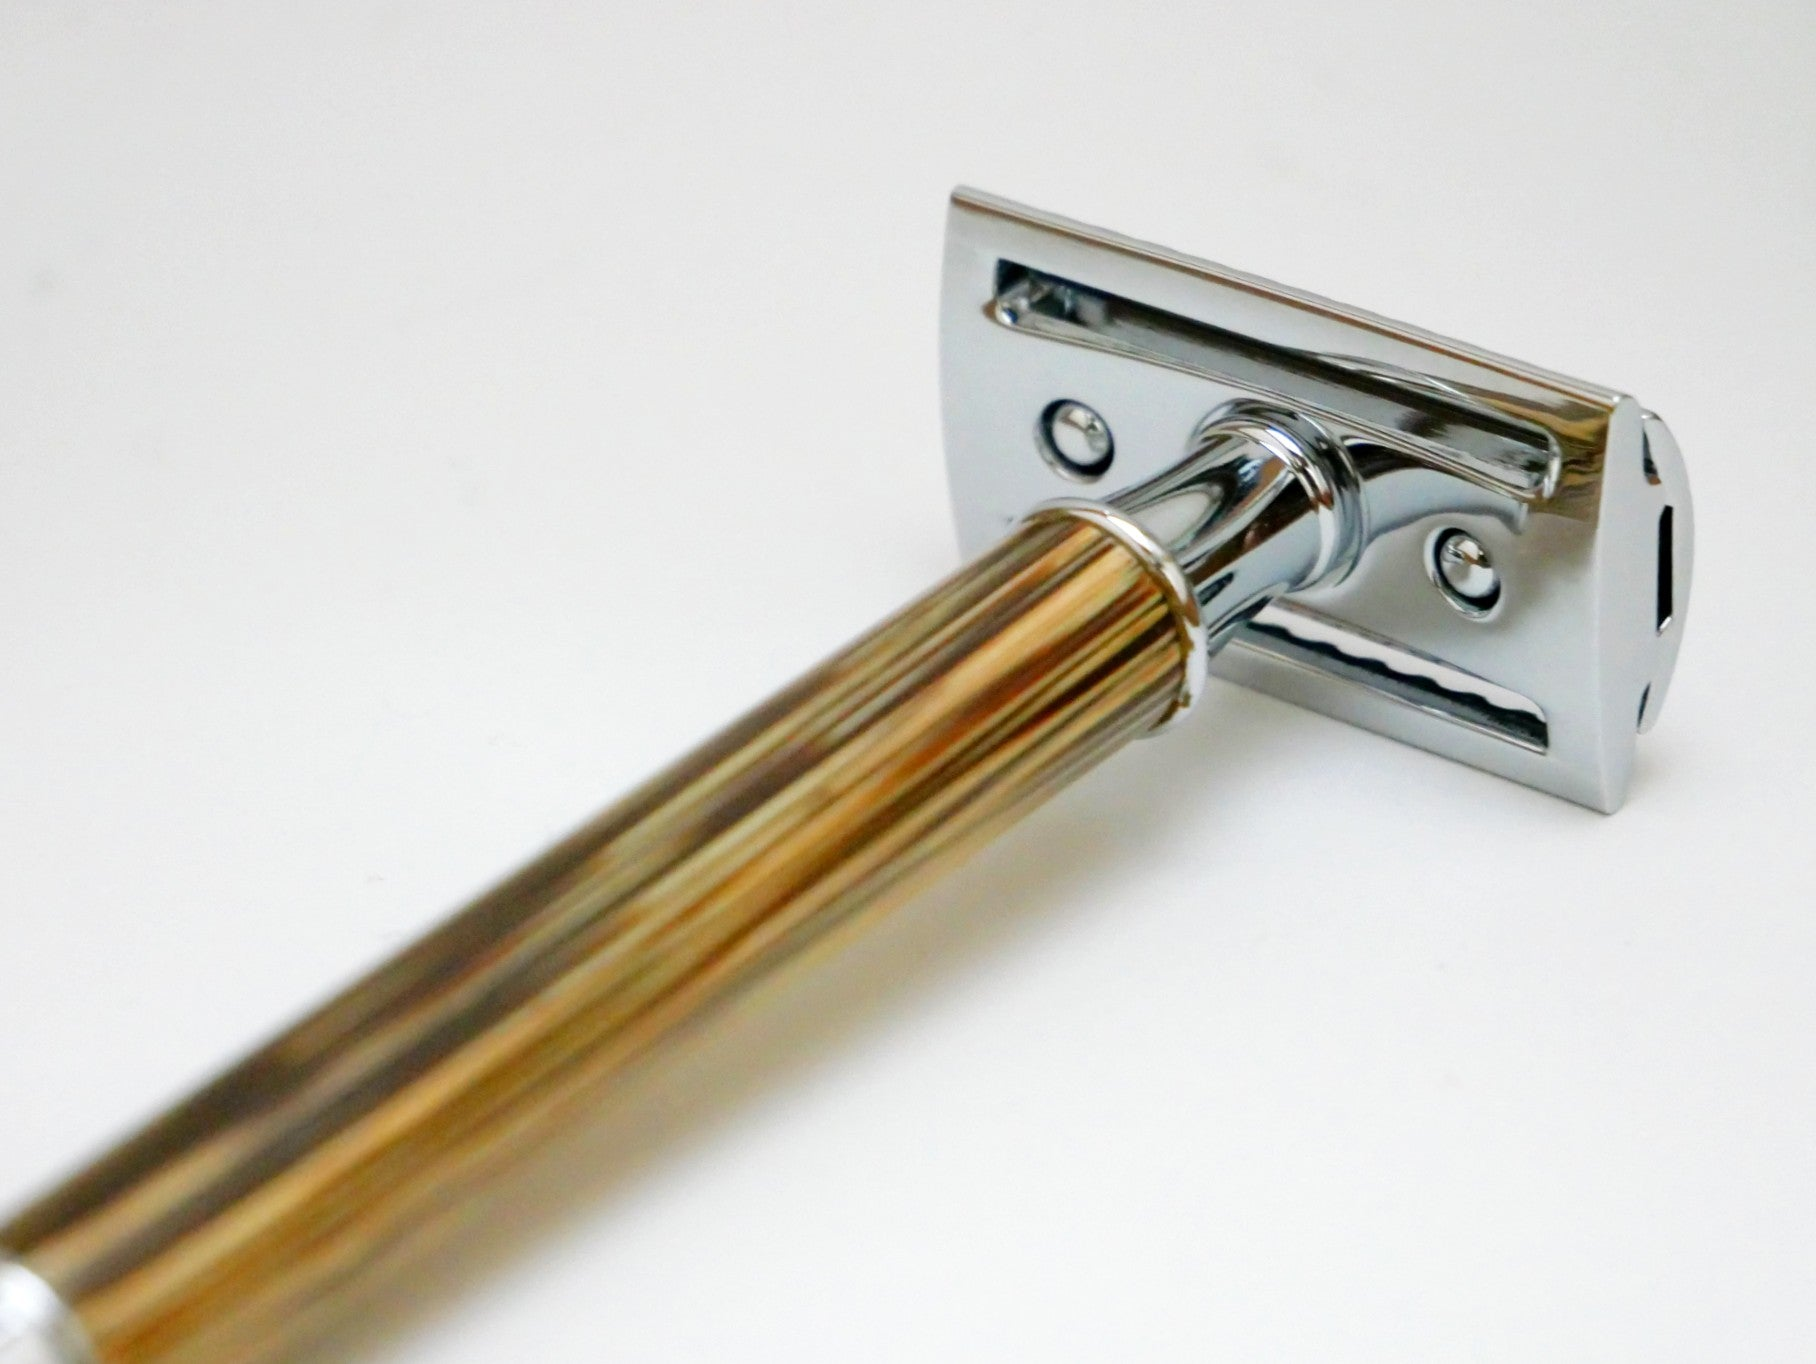 Reusable Safety Razor (Bamboo/Silver) + 10 Stainless Steel Razor Blades